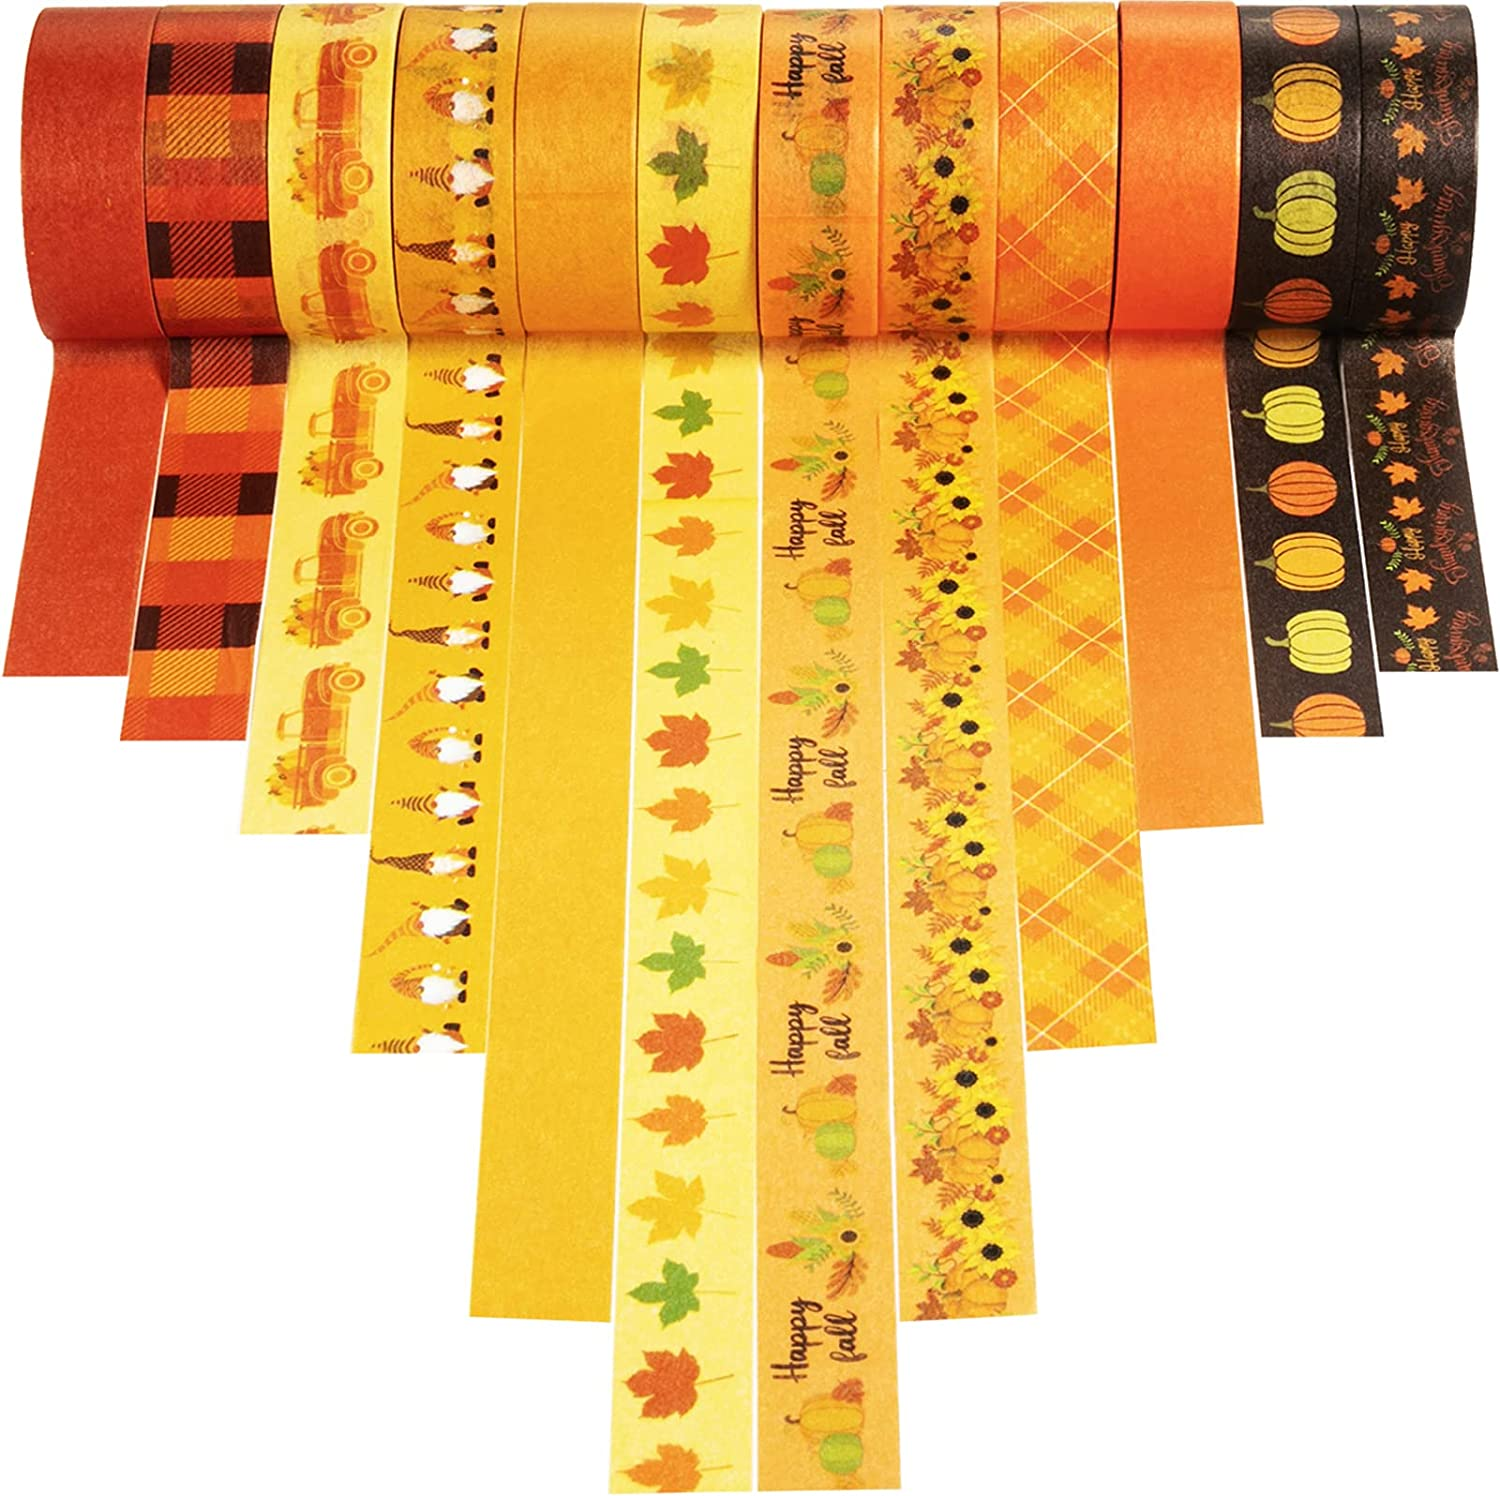 12 Rolls Thanksgiving Fall Washi Tape Orange Plaid Masking Tape Maple Leaves Decorative Tape Autumn Pumpkin Book Tape Sunflower Tape Stickers for Thanksgiving Party Supplies Scrapbook DIY Wrapping